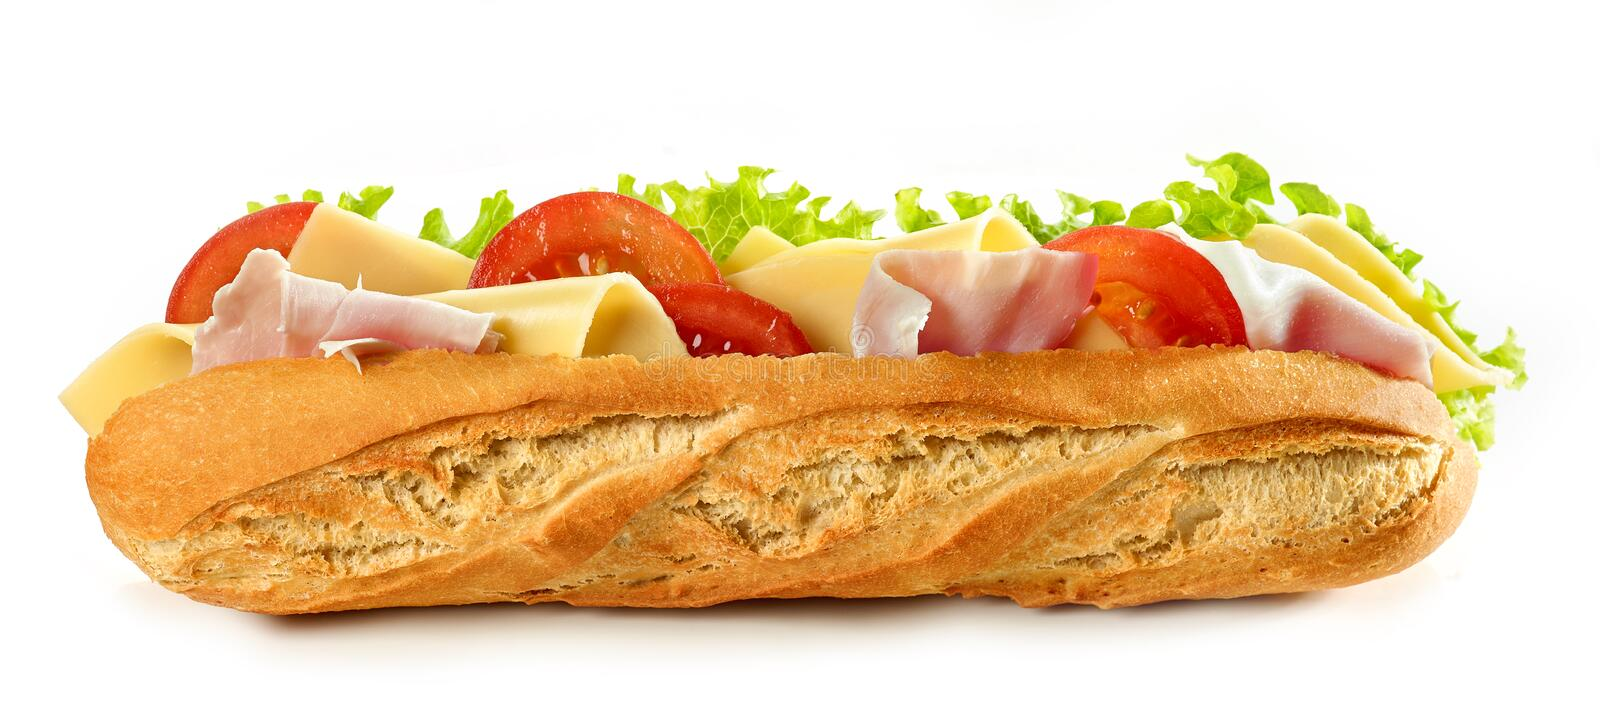 Baguette sandwich isolated on white background royalty free stock photo